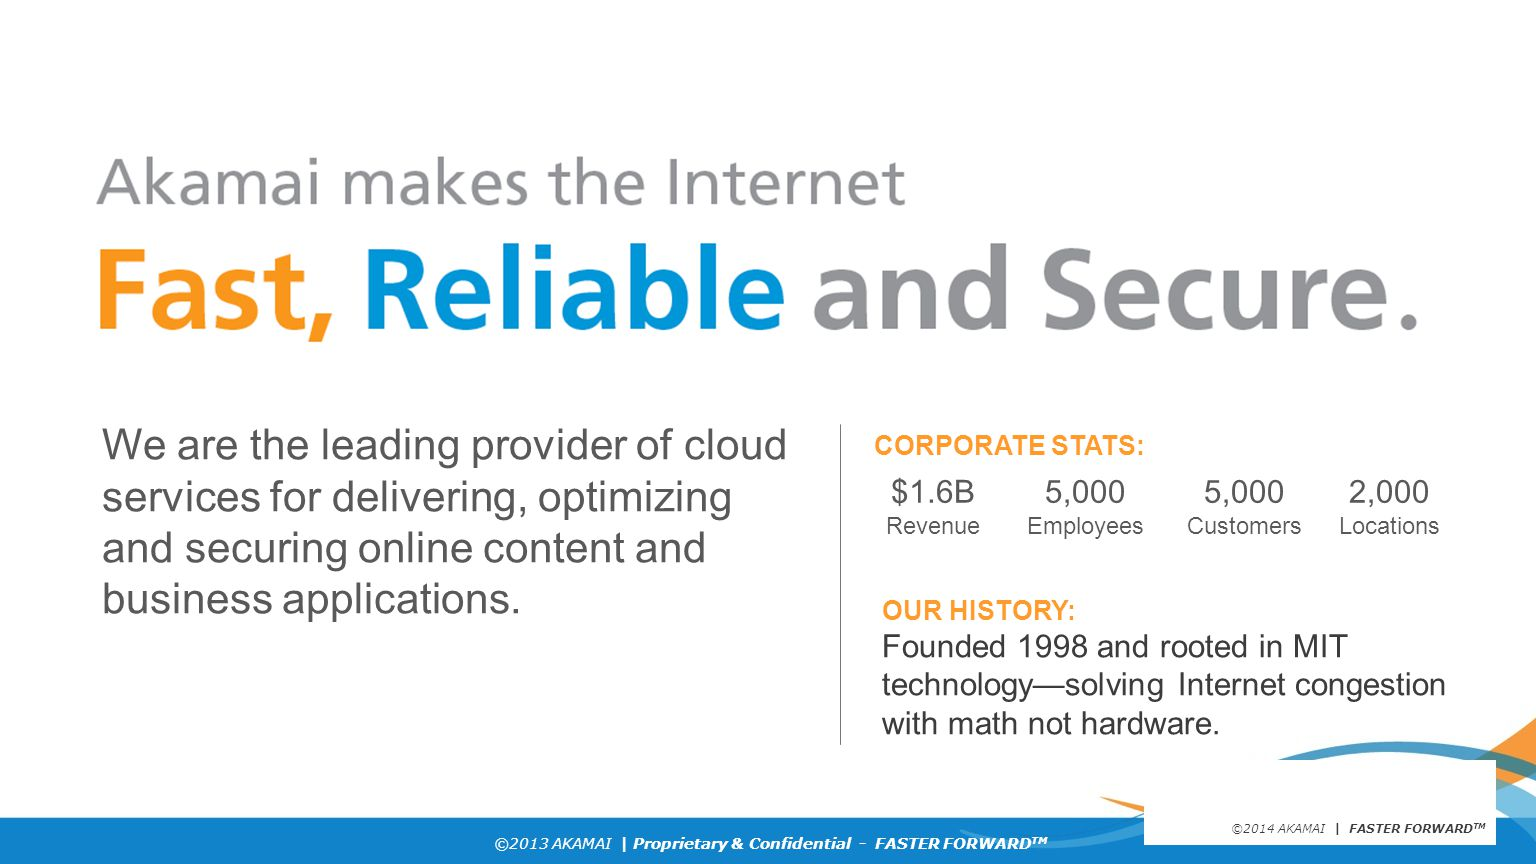 We are the leading provider of cloud services for delivering, optimizing and securing online content and business applications.